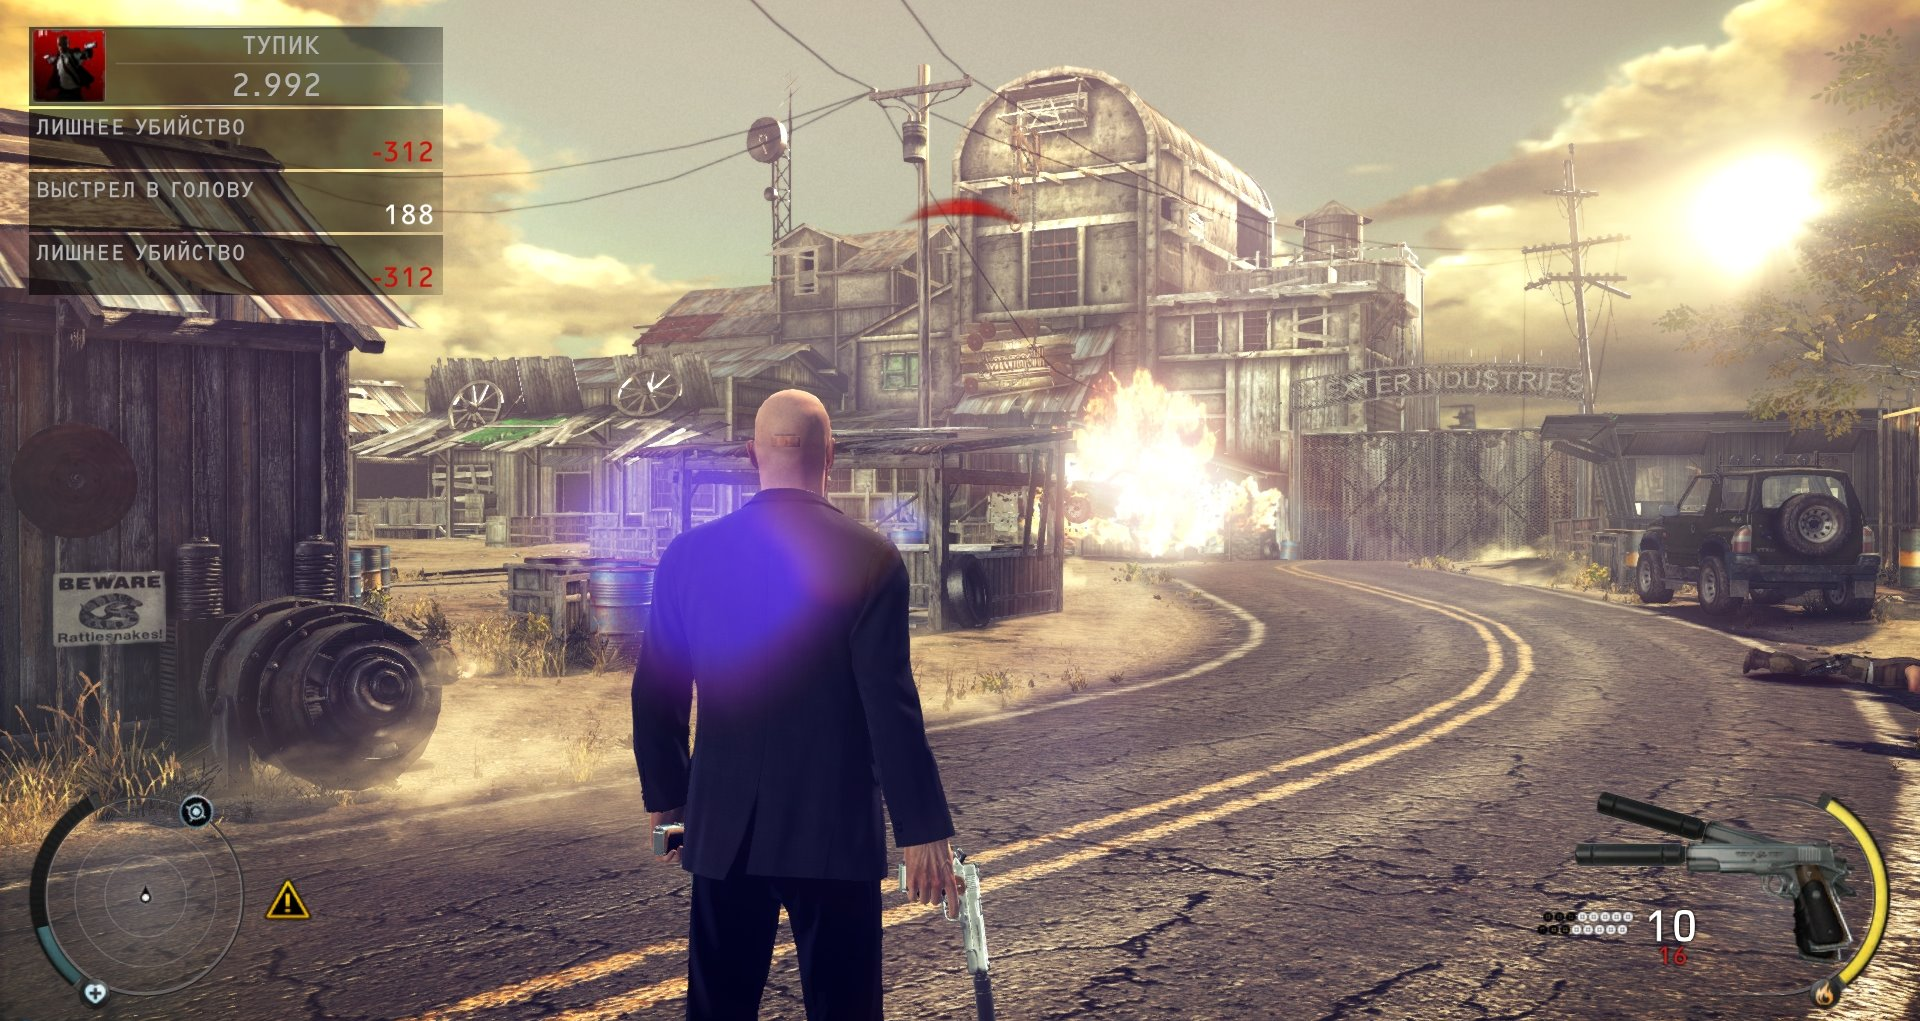 Hitman: Absolution Снимок из игры